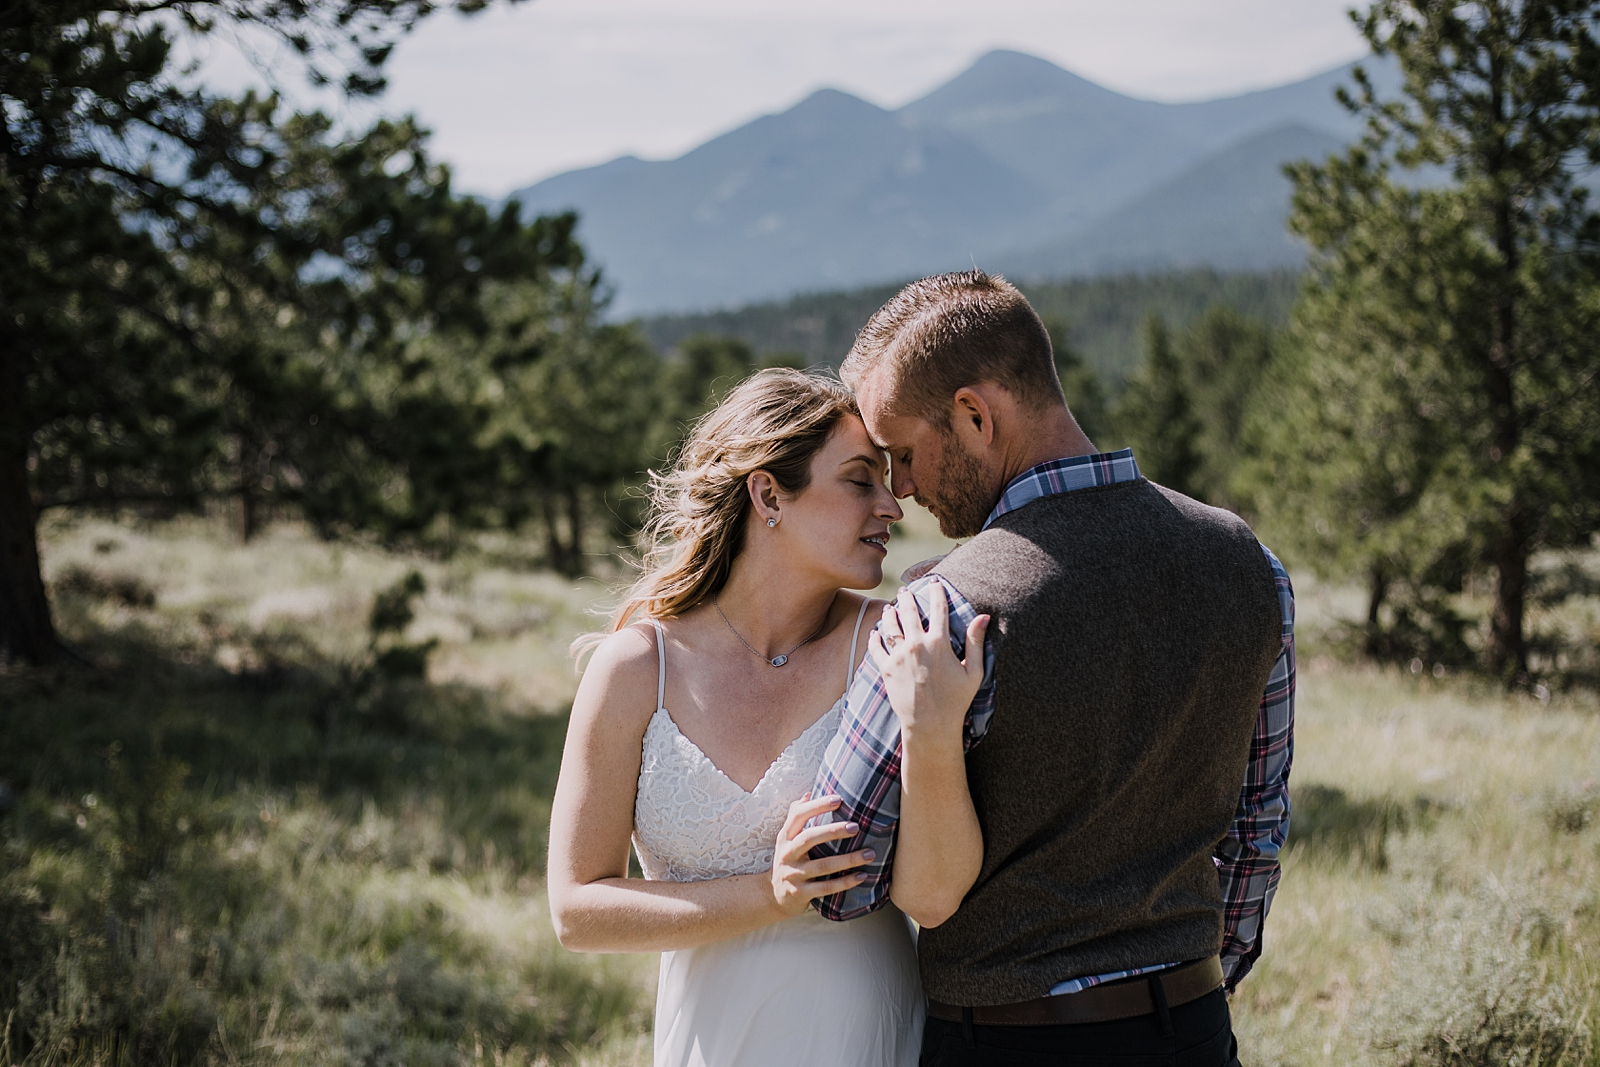 hiking at 3M curves in rocky mountain national park, rocky mountain national park elopement, self solemnize in rocky mountain national park, estes park elopement, 3M curves elopement